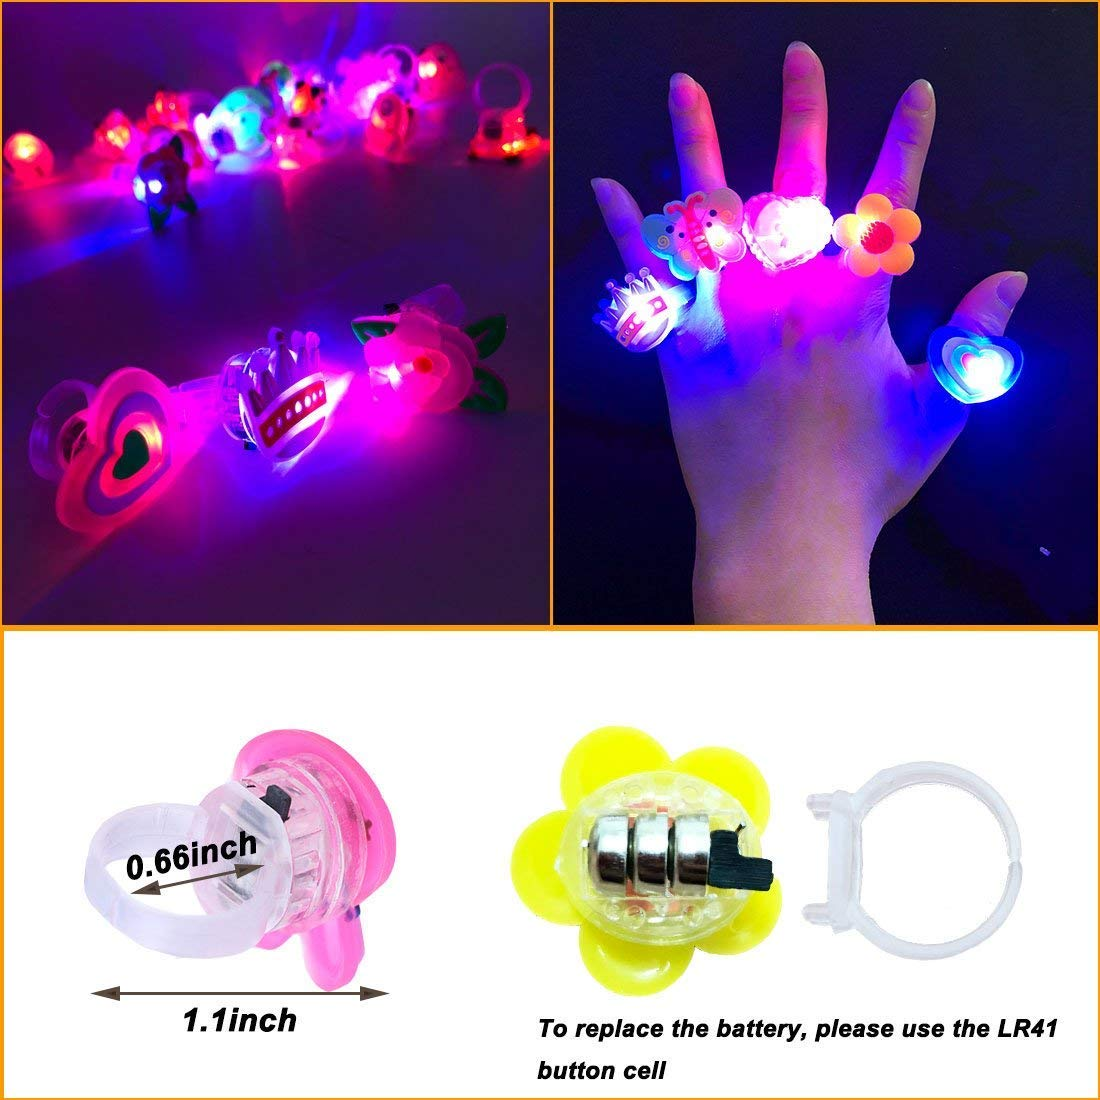 ChangSheng Glow Rings Led Party Supplies,50 Pcs Random Pattern Light Up Rings for Graduation Ceremonies, Birthday Parties and Parties by ChangSheng (Image #4)